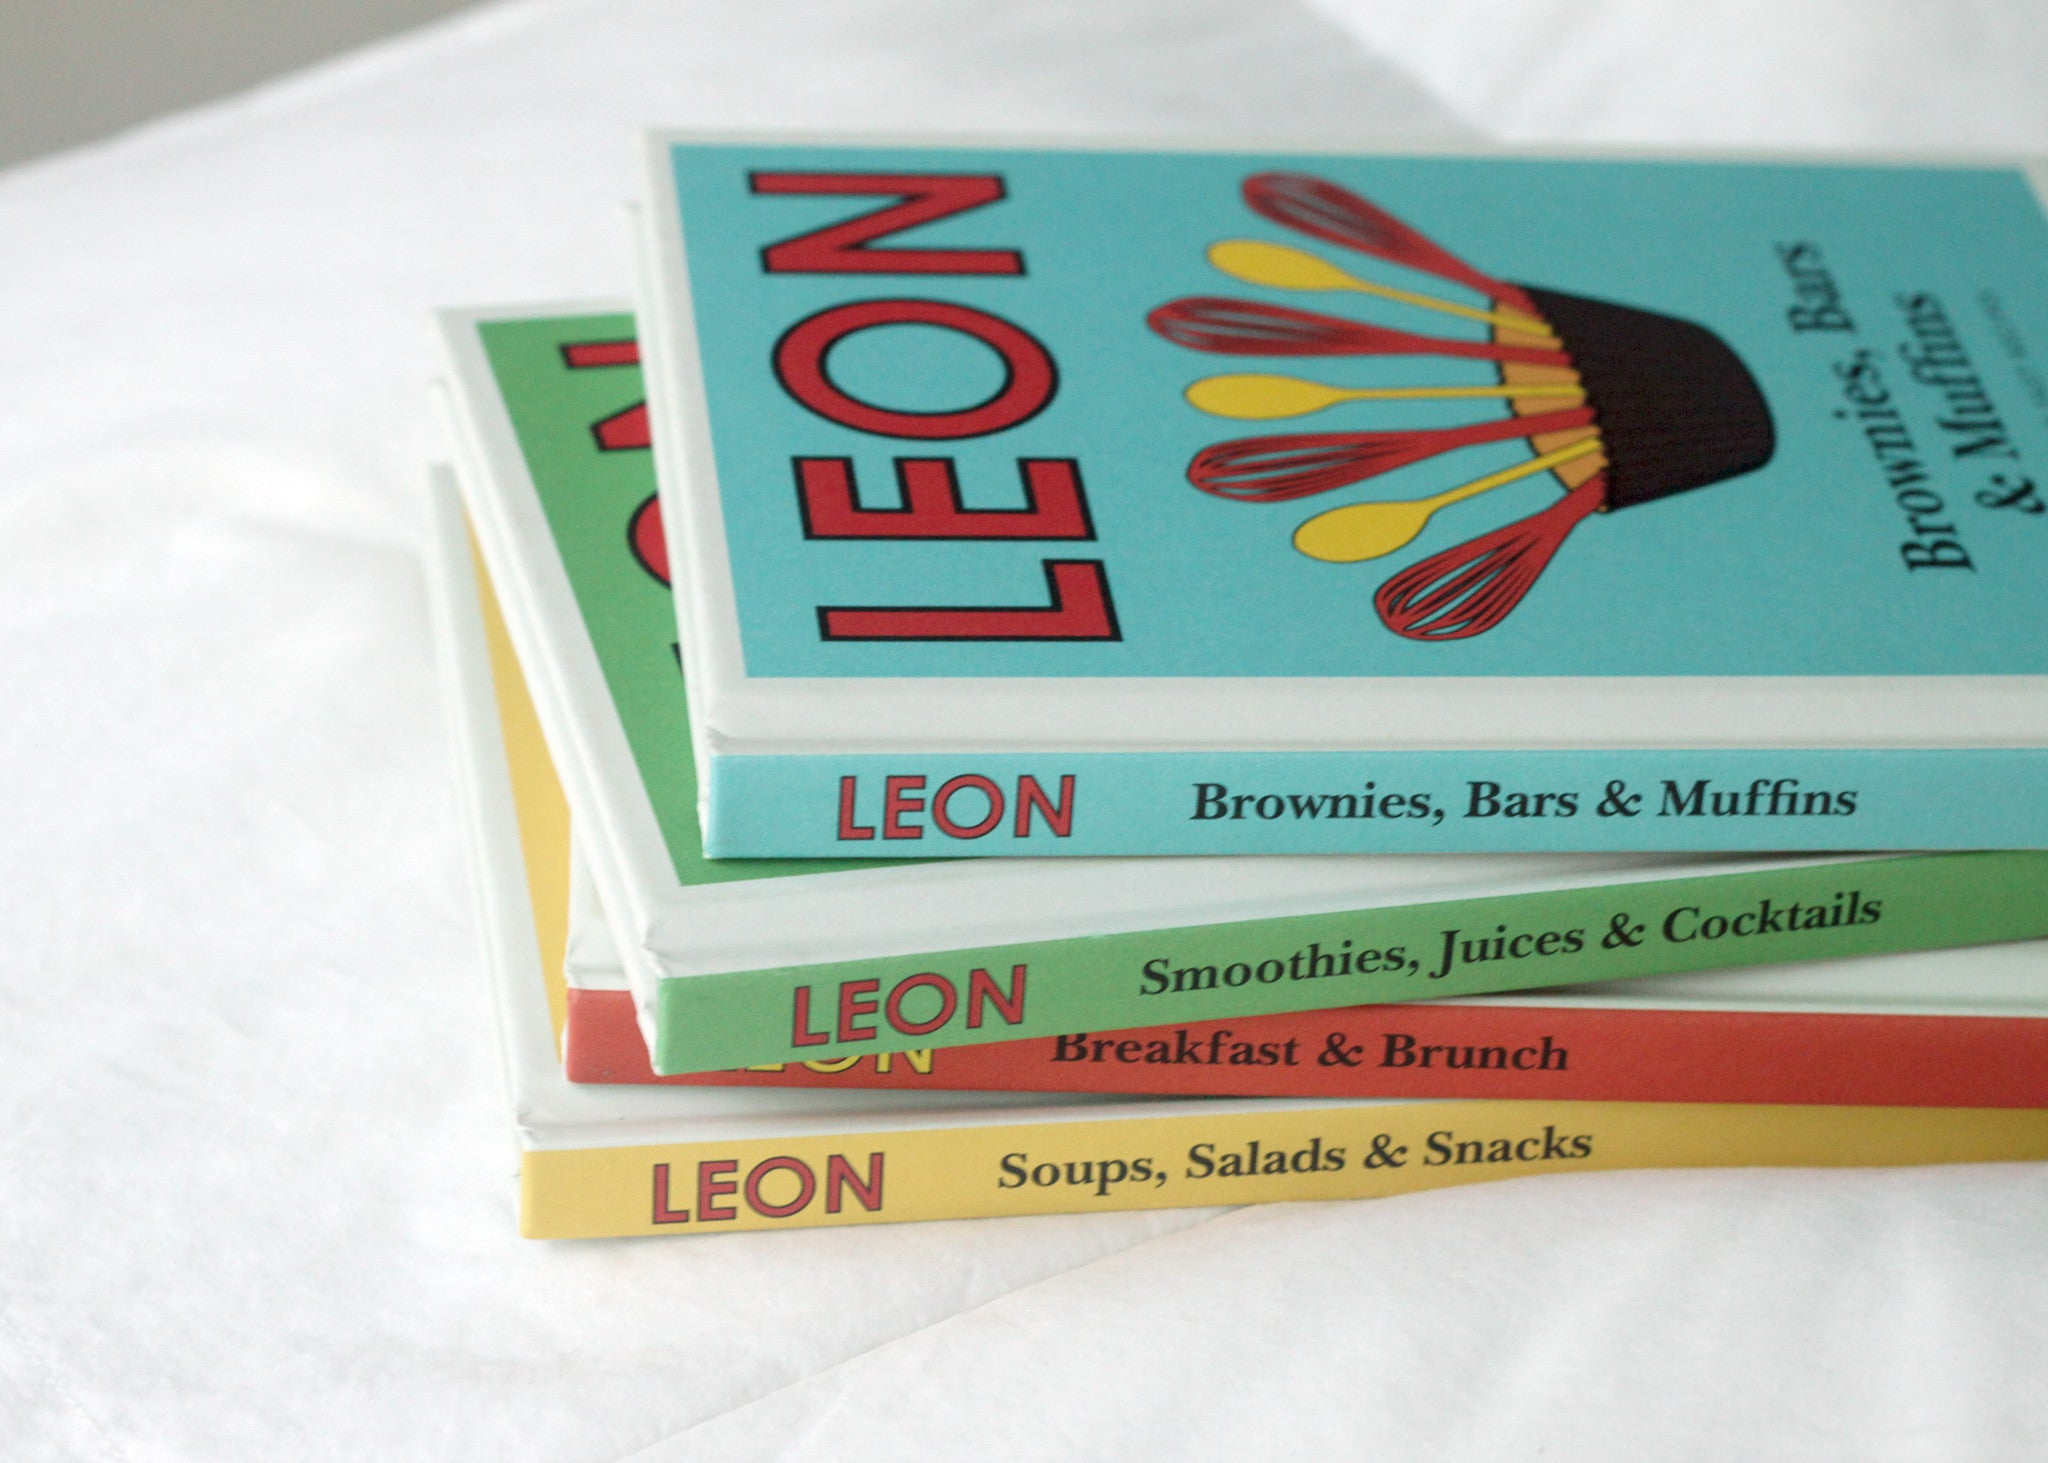 LEON: Breakfast & Brunch